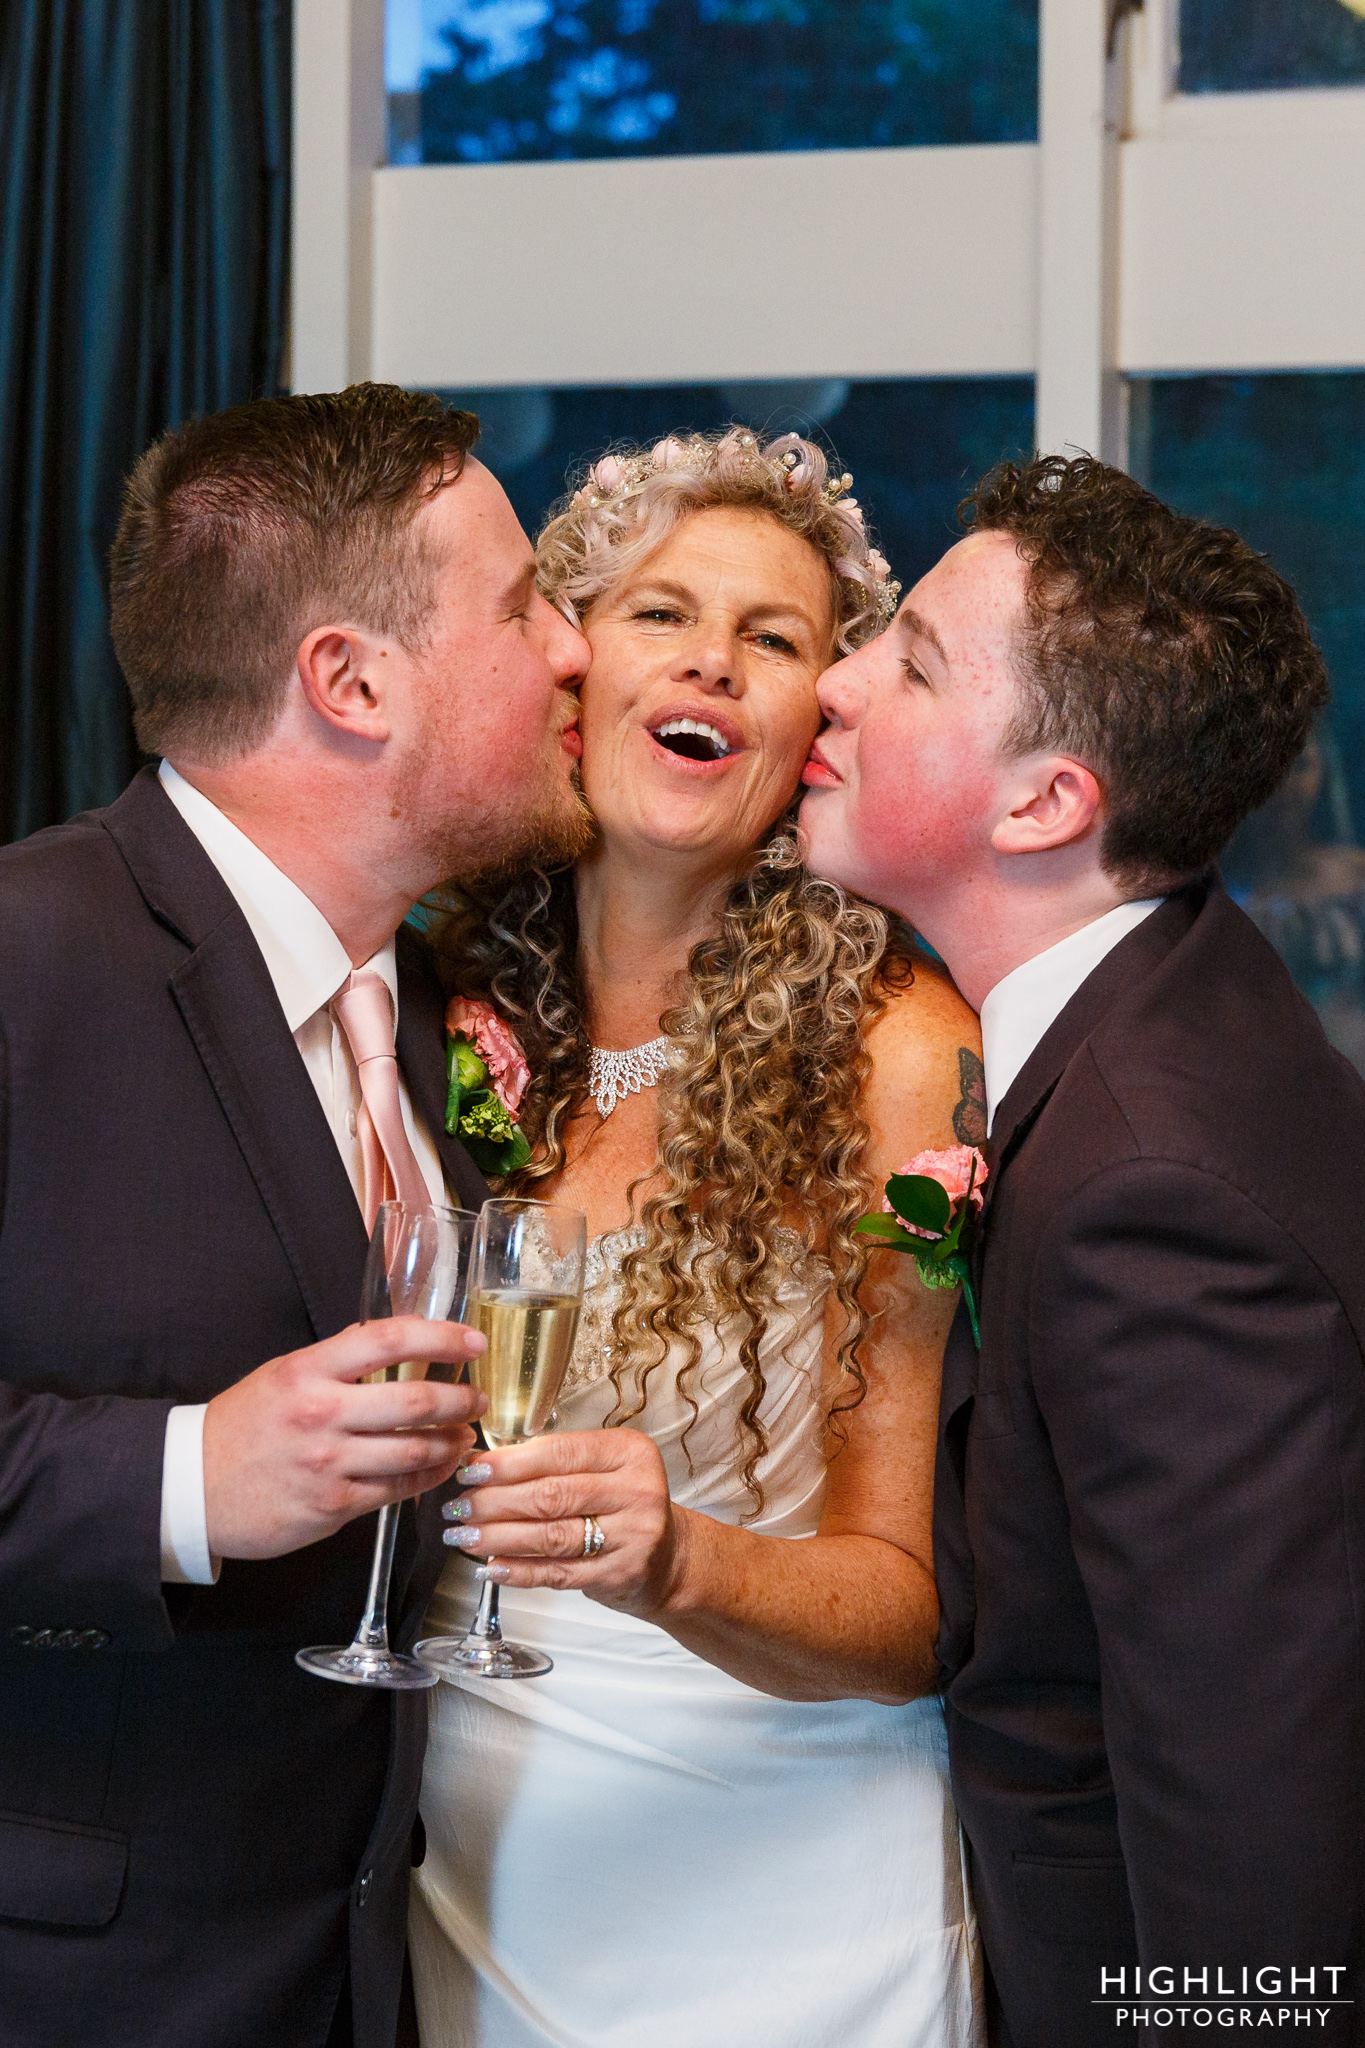 highlight_wedding_photography_palmerston_north_manawatu_chalet_wedding-126.jpg